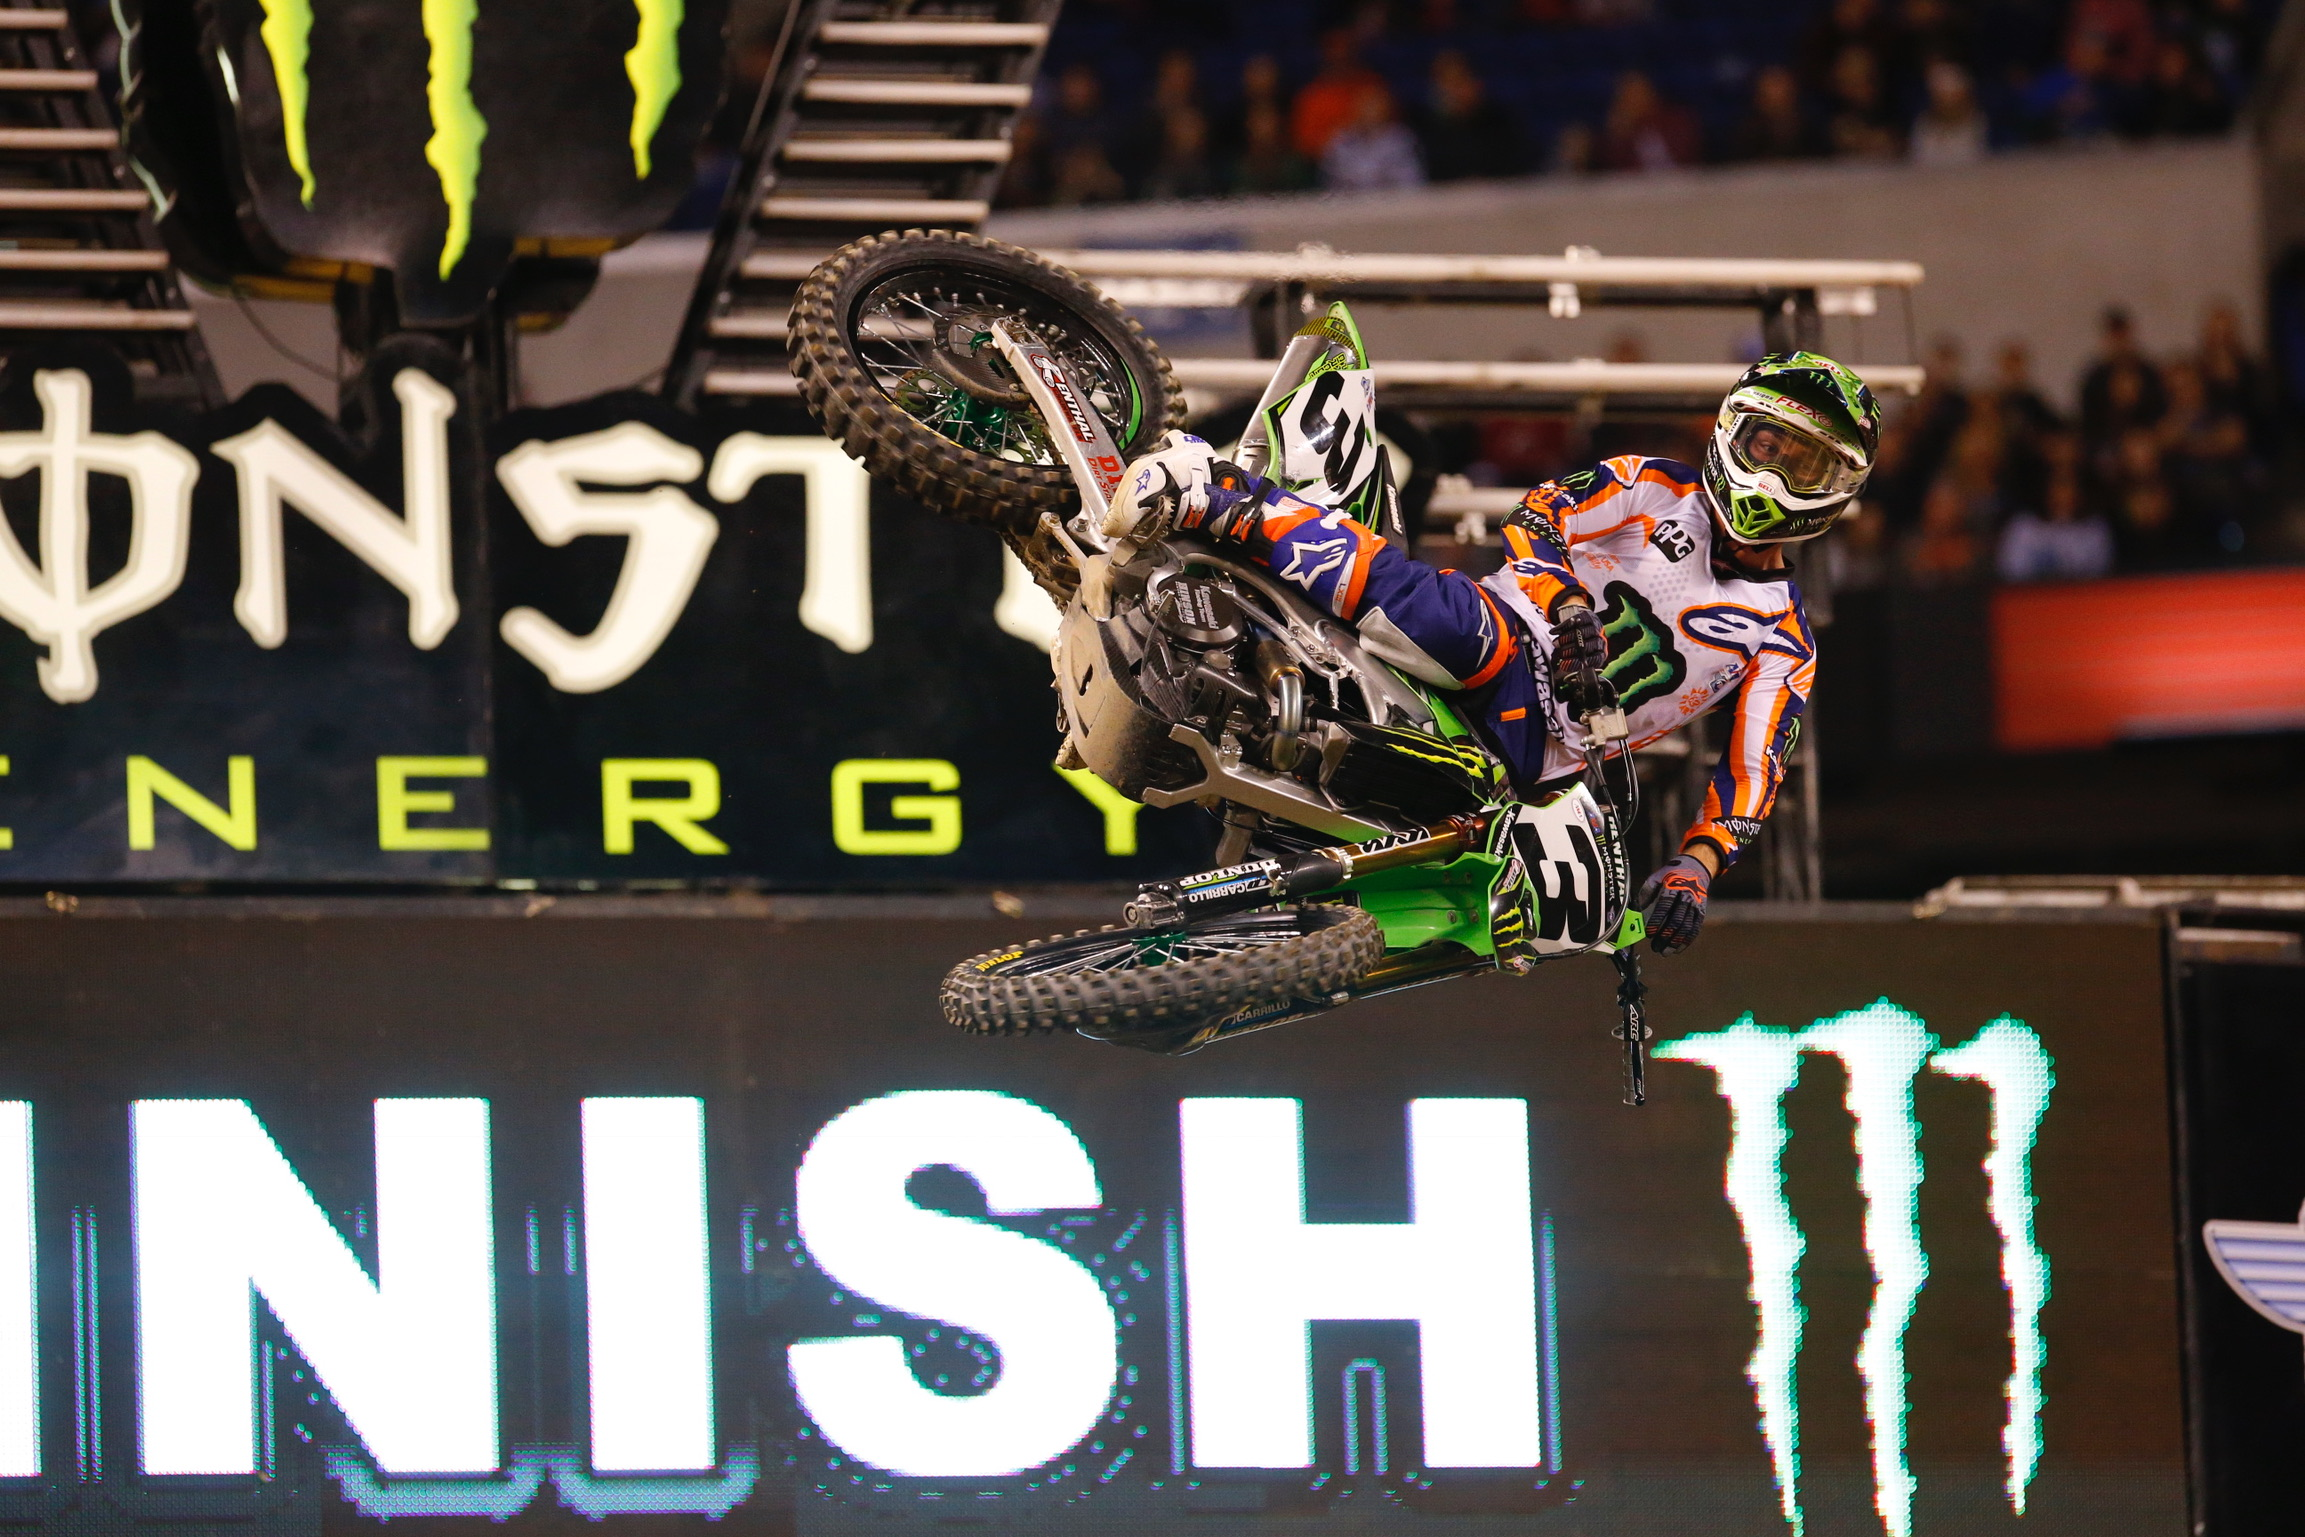 Tomac Earns Win Number 6 in Indy